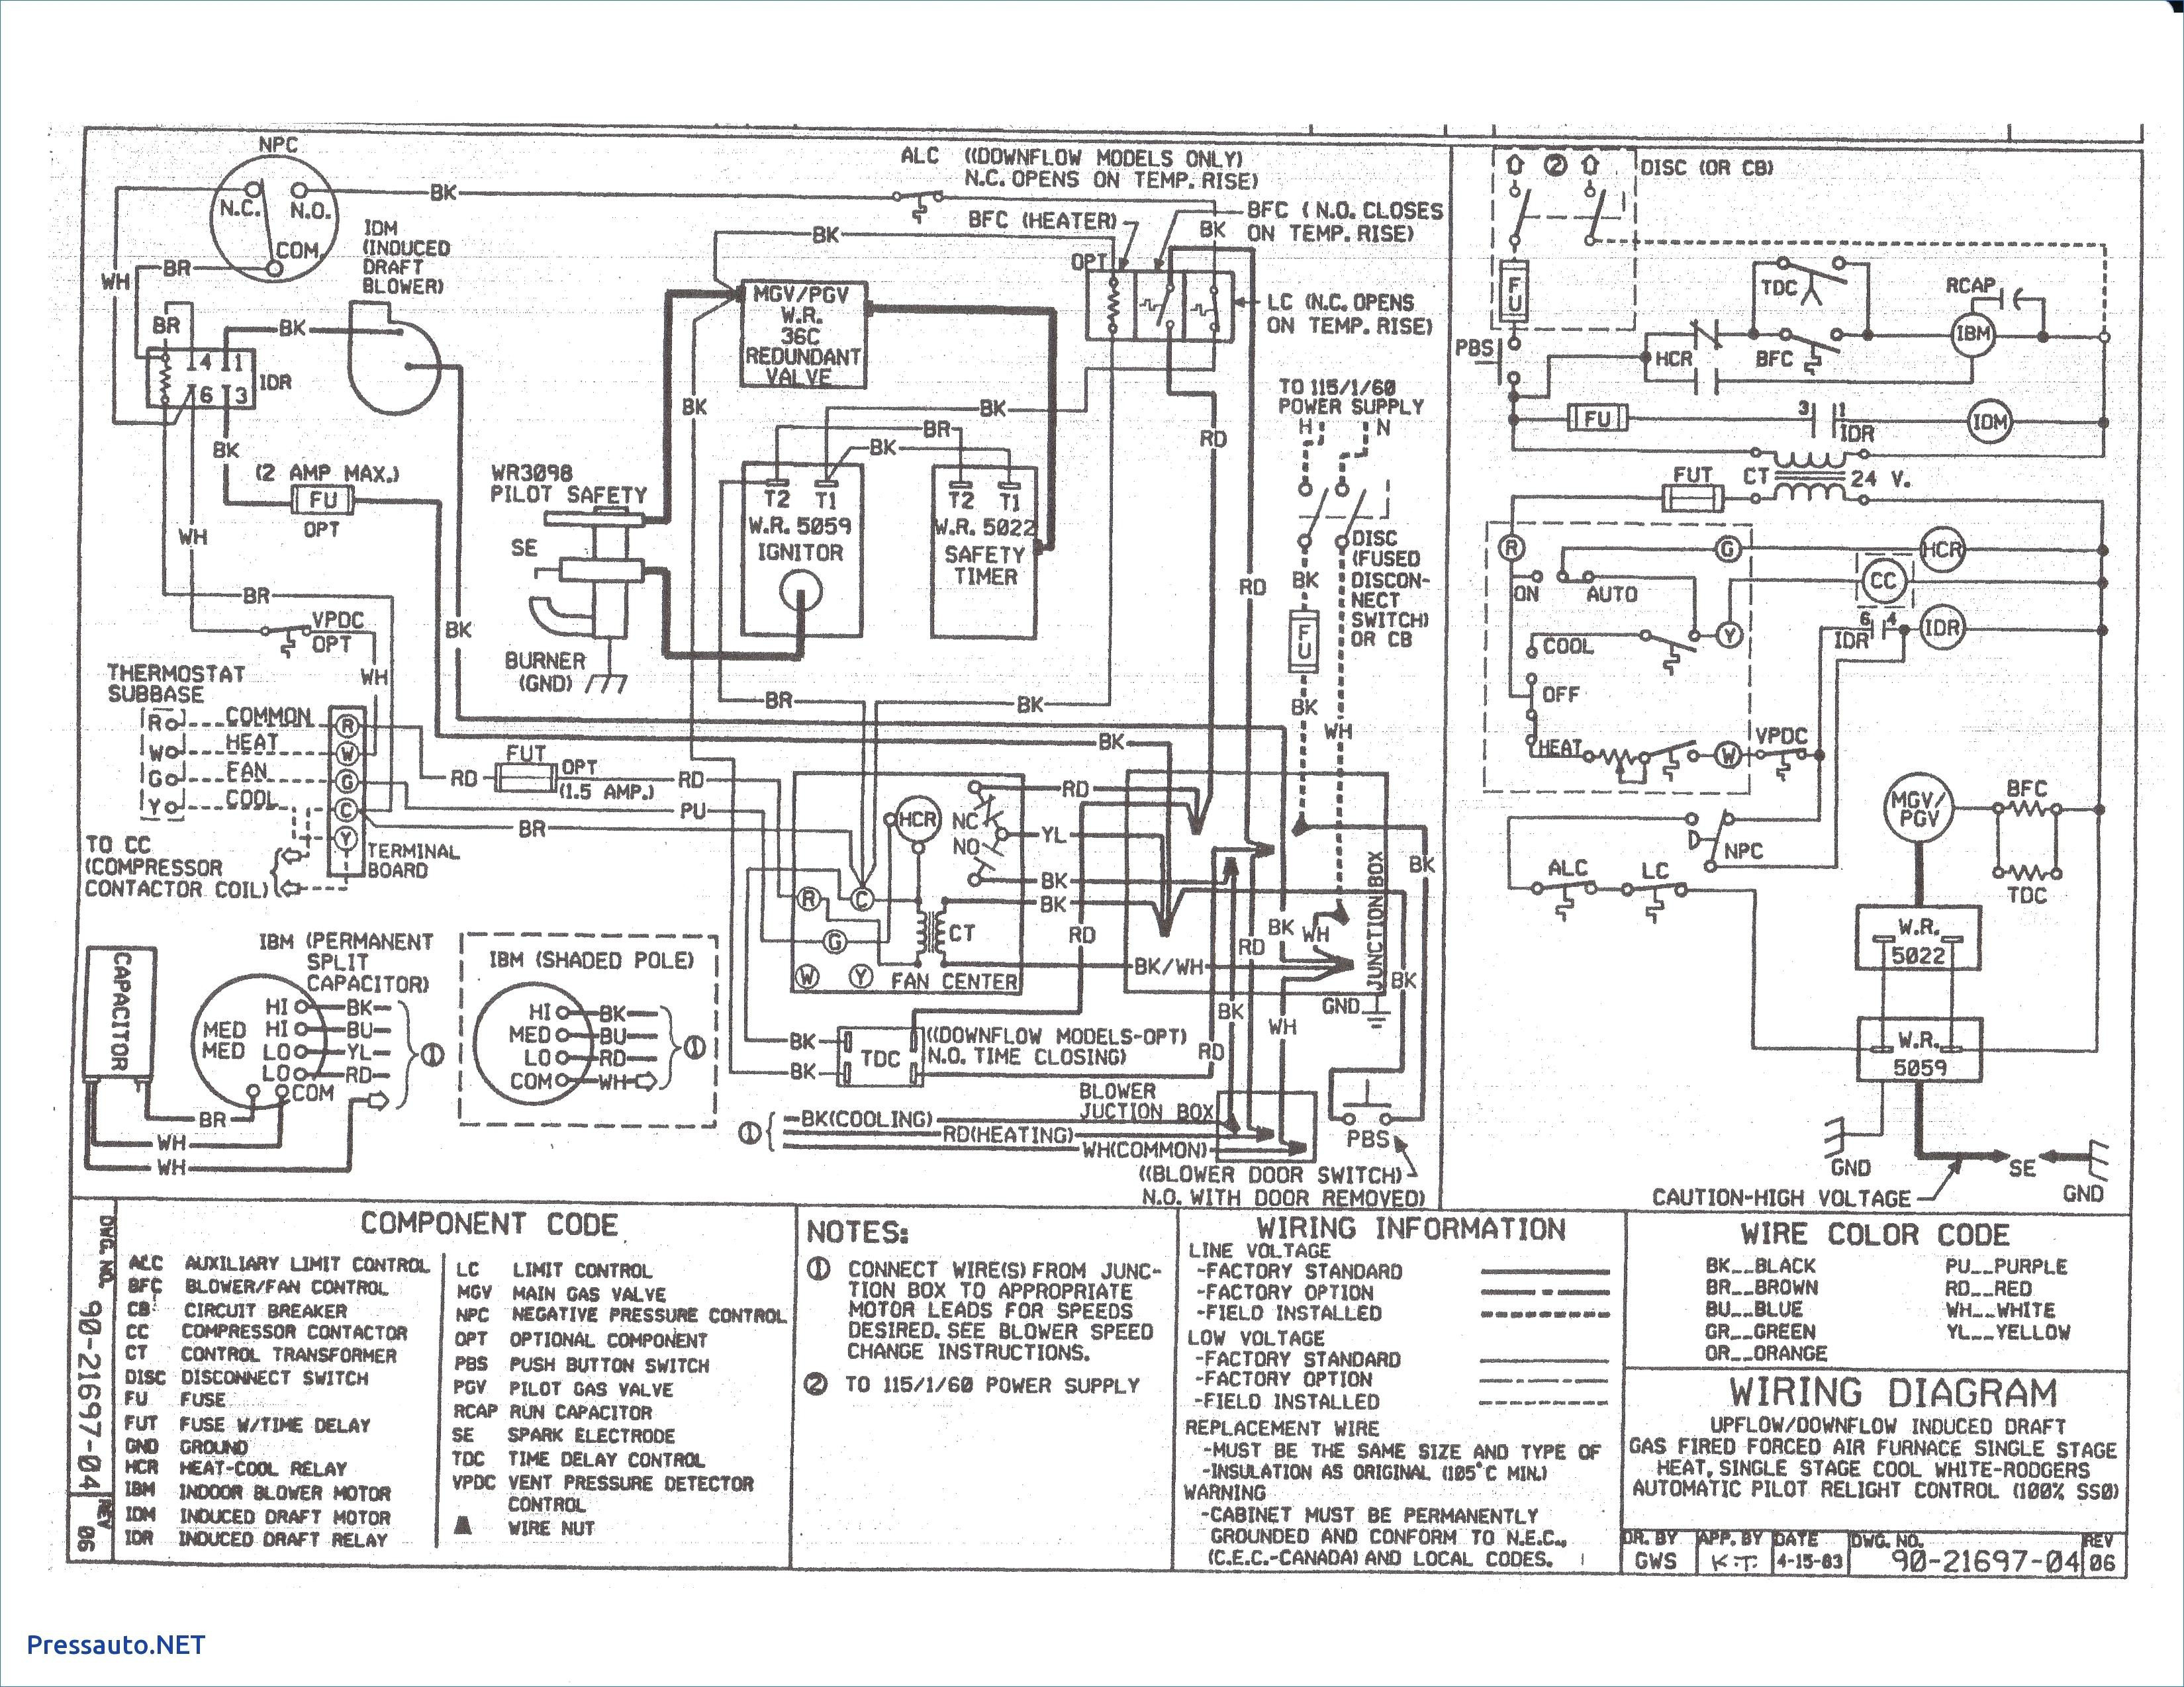 wiring diagram for mobile home furnace Download-wiring diagram double wide mobile home inspirationa electric furnace rh kobecityinfo clayton wood furnace wiring 16-g